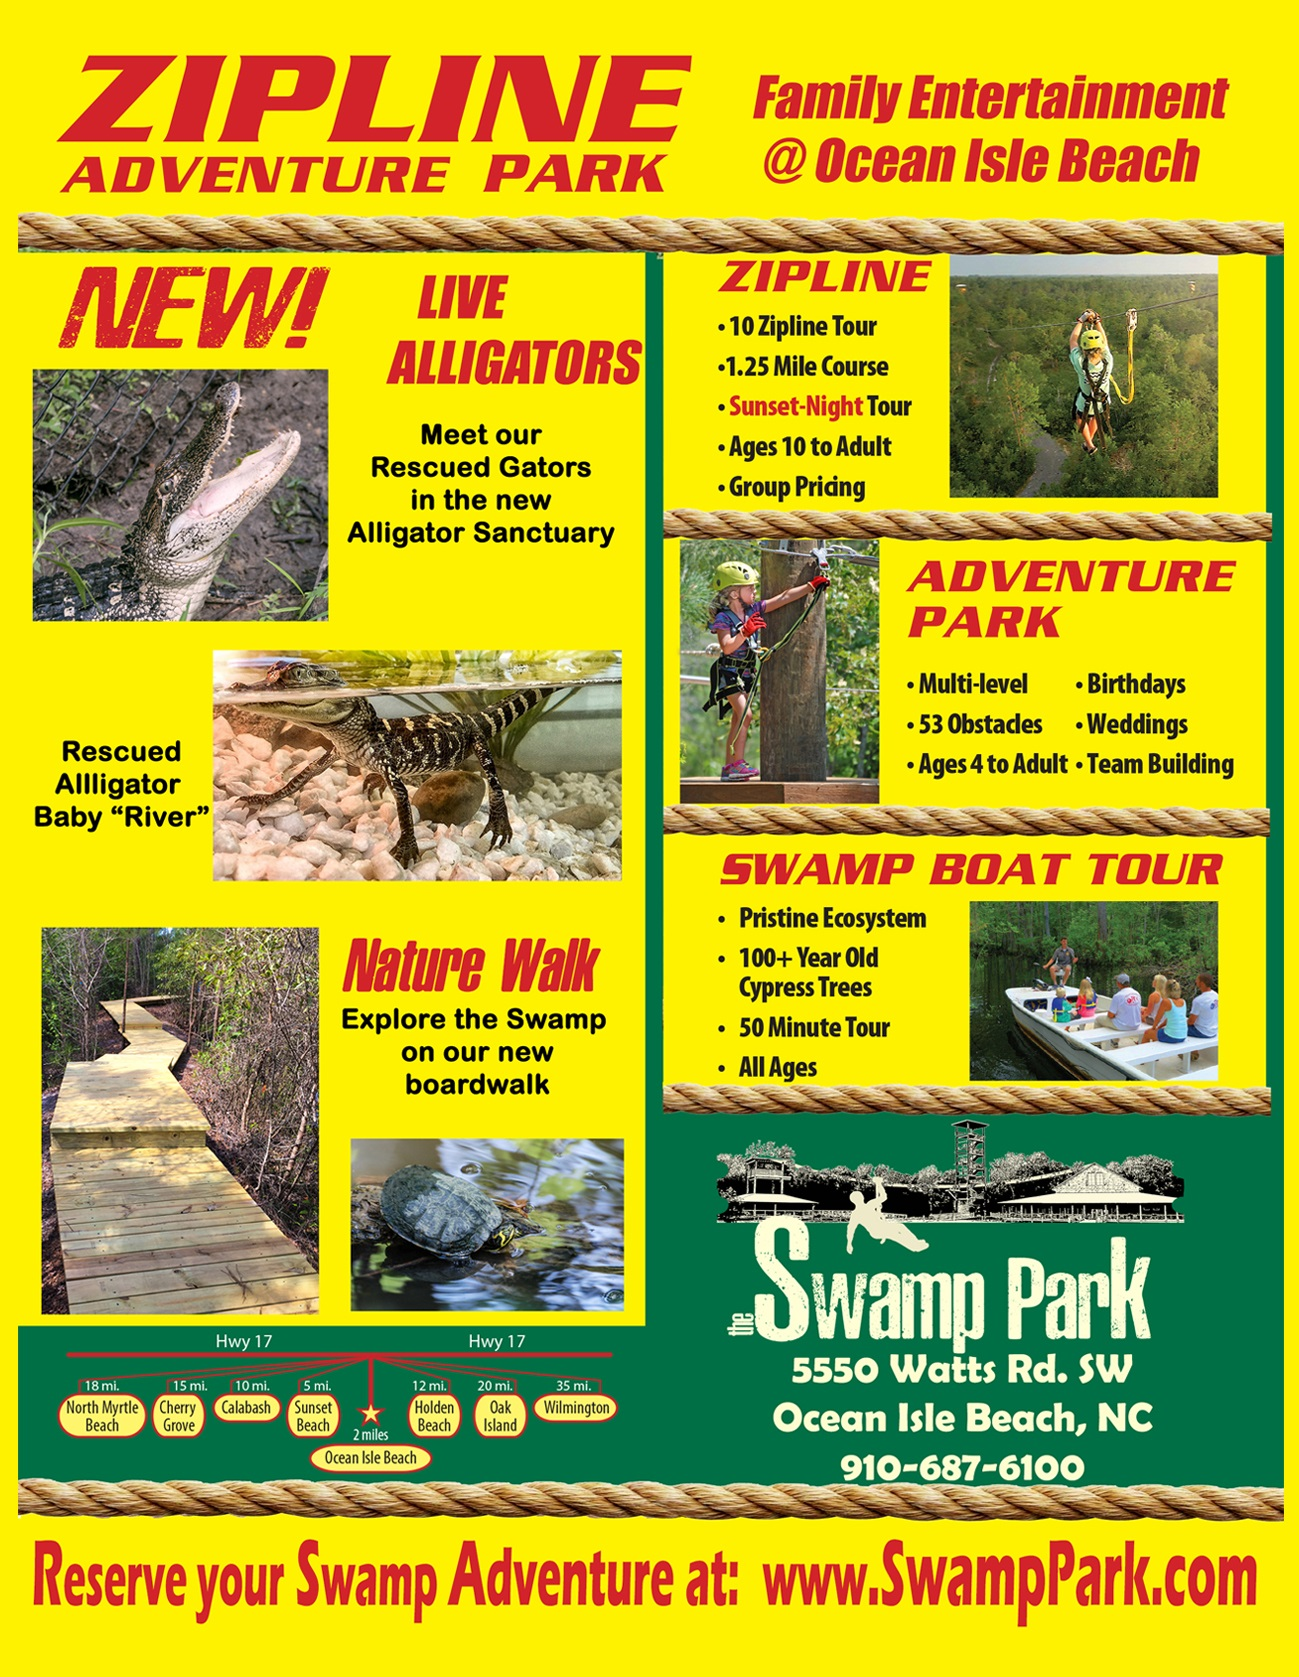 The Swamp Park Adventure Park Ocean Isle Beach NC